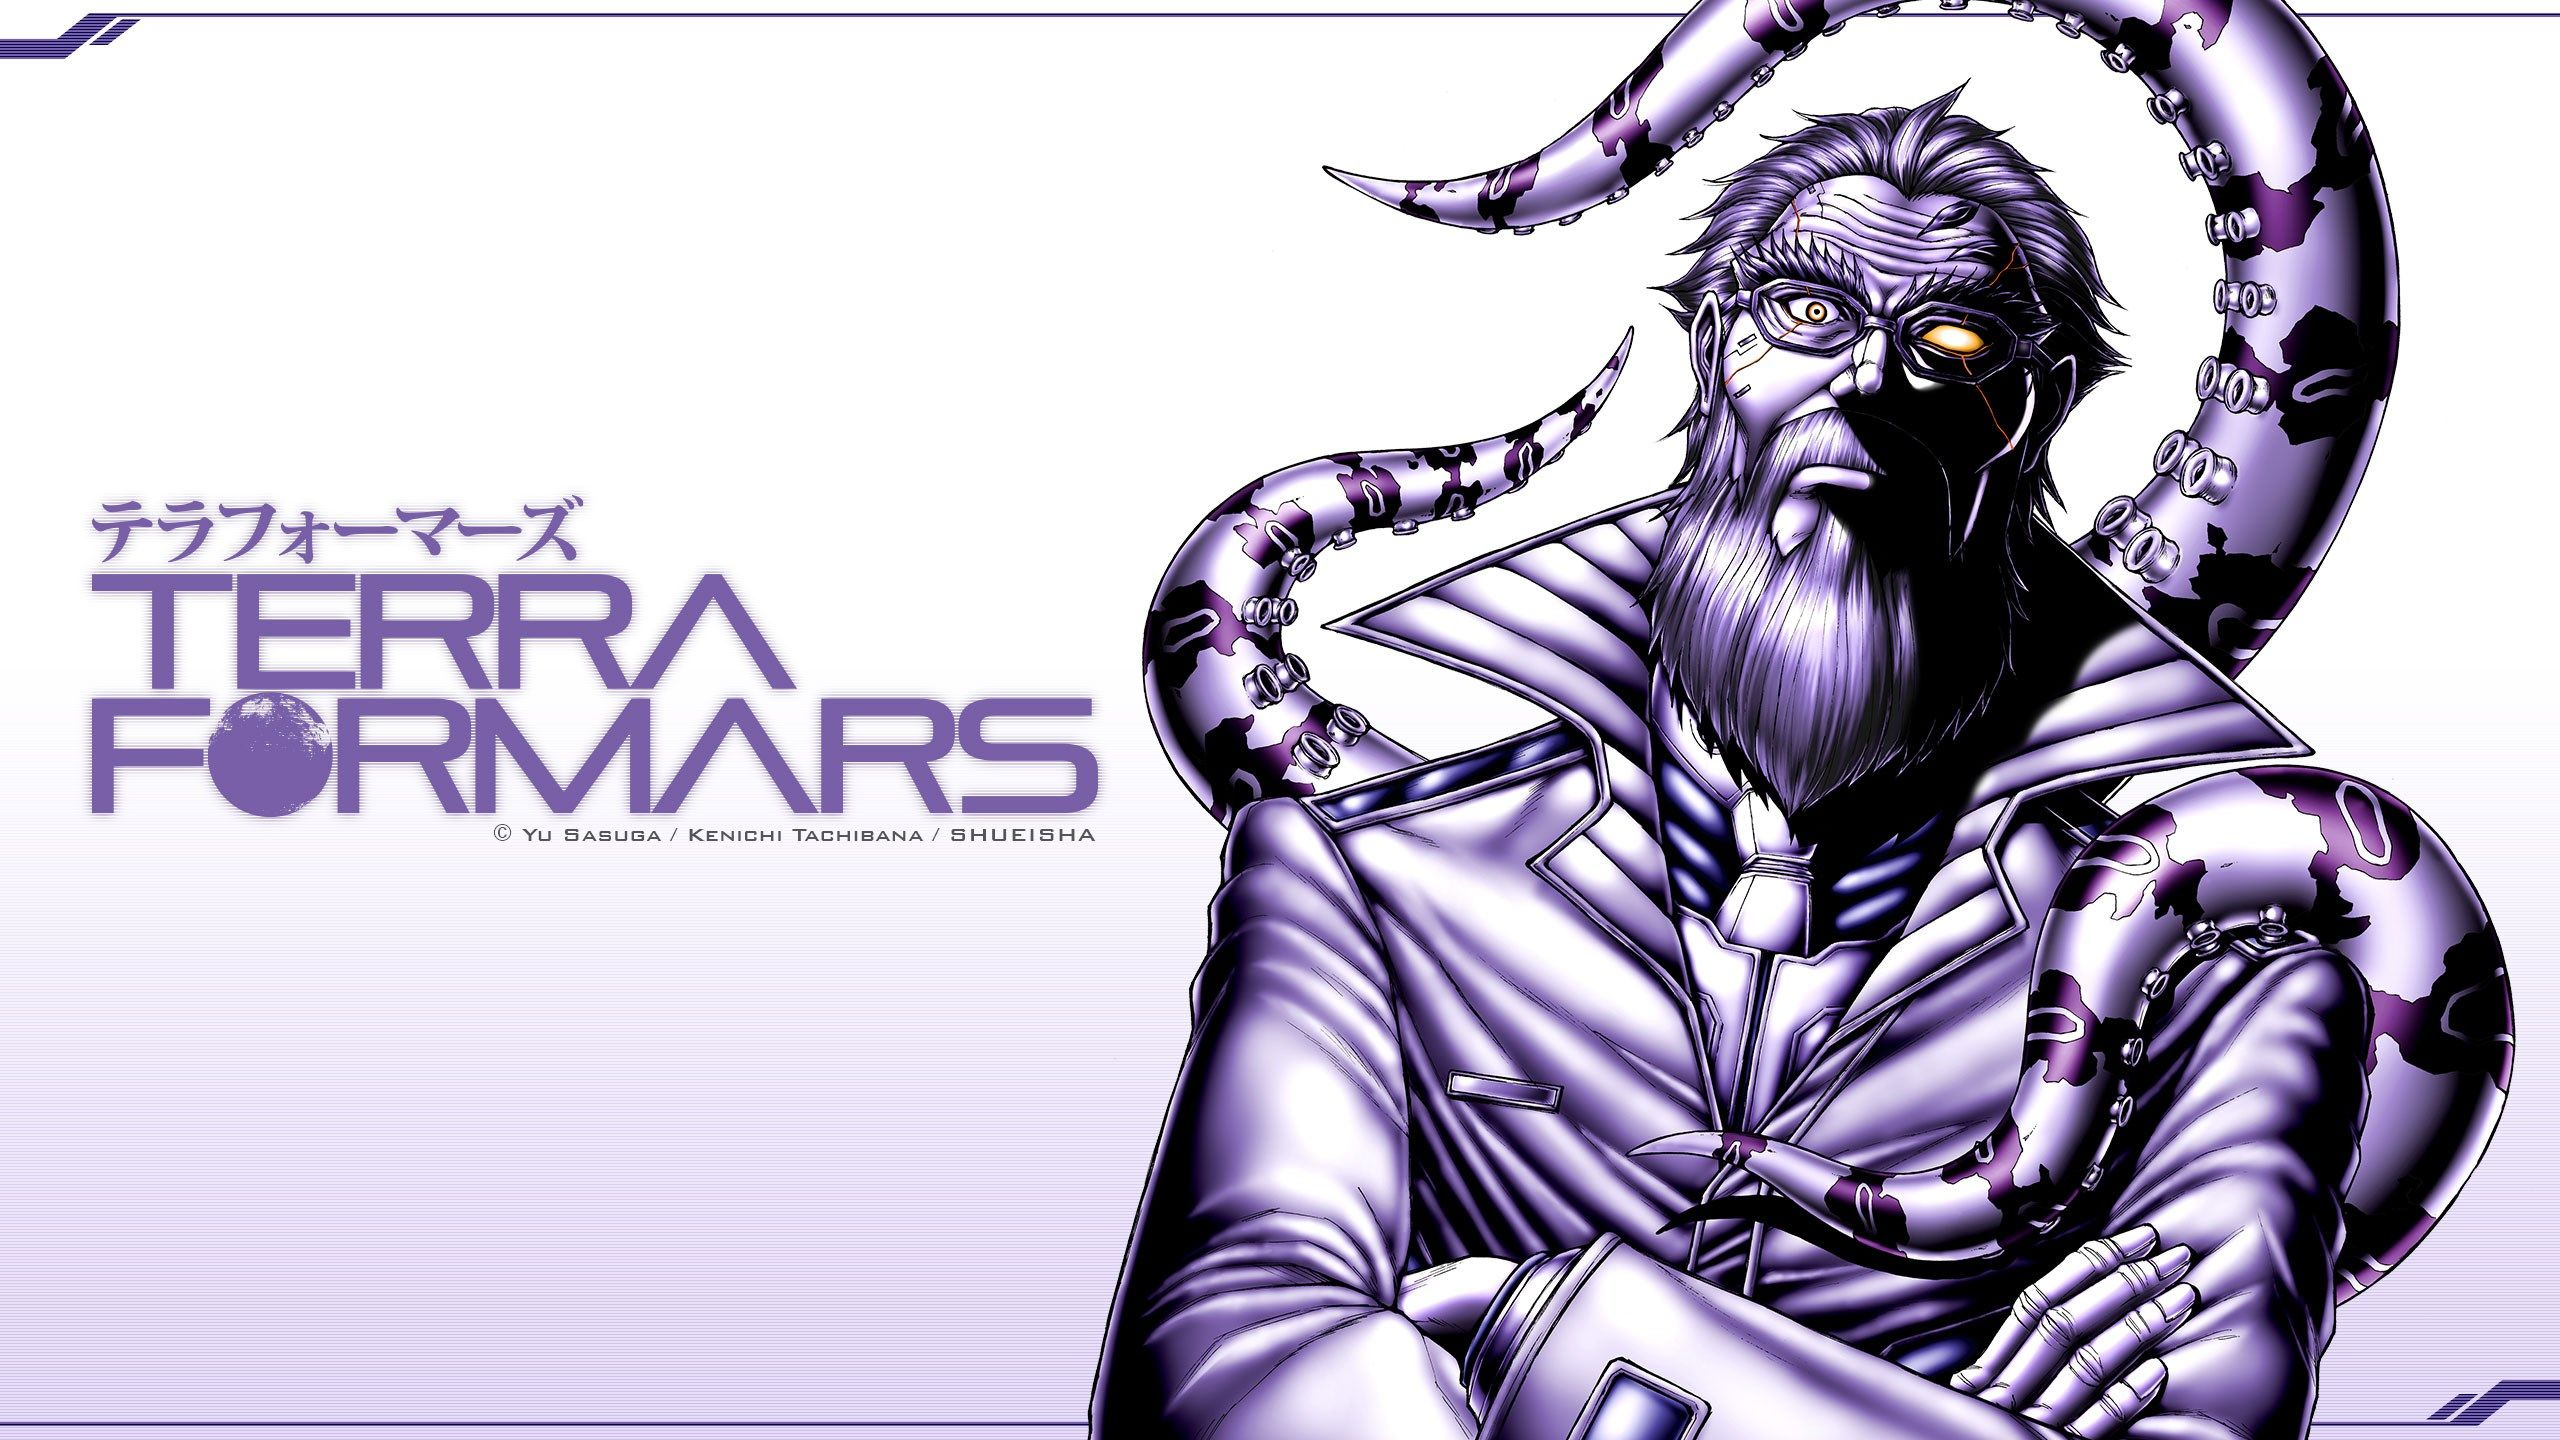 2017 03 03 Terra Formars Wallpaper Free For Desktop 1714934